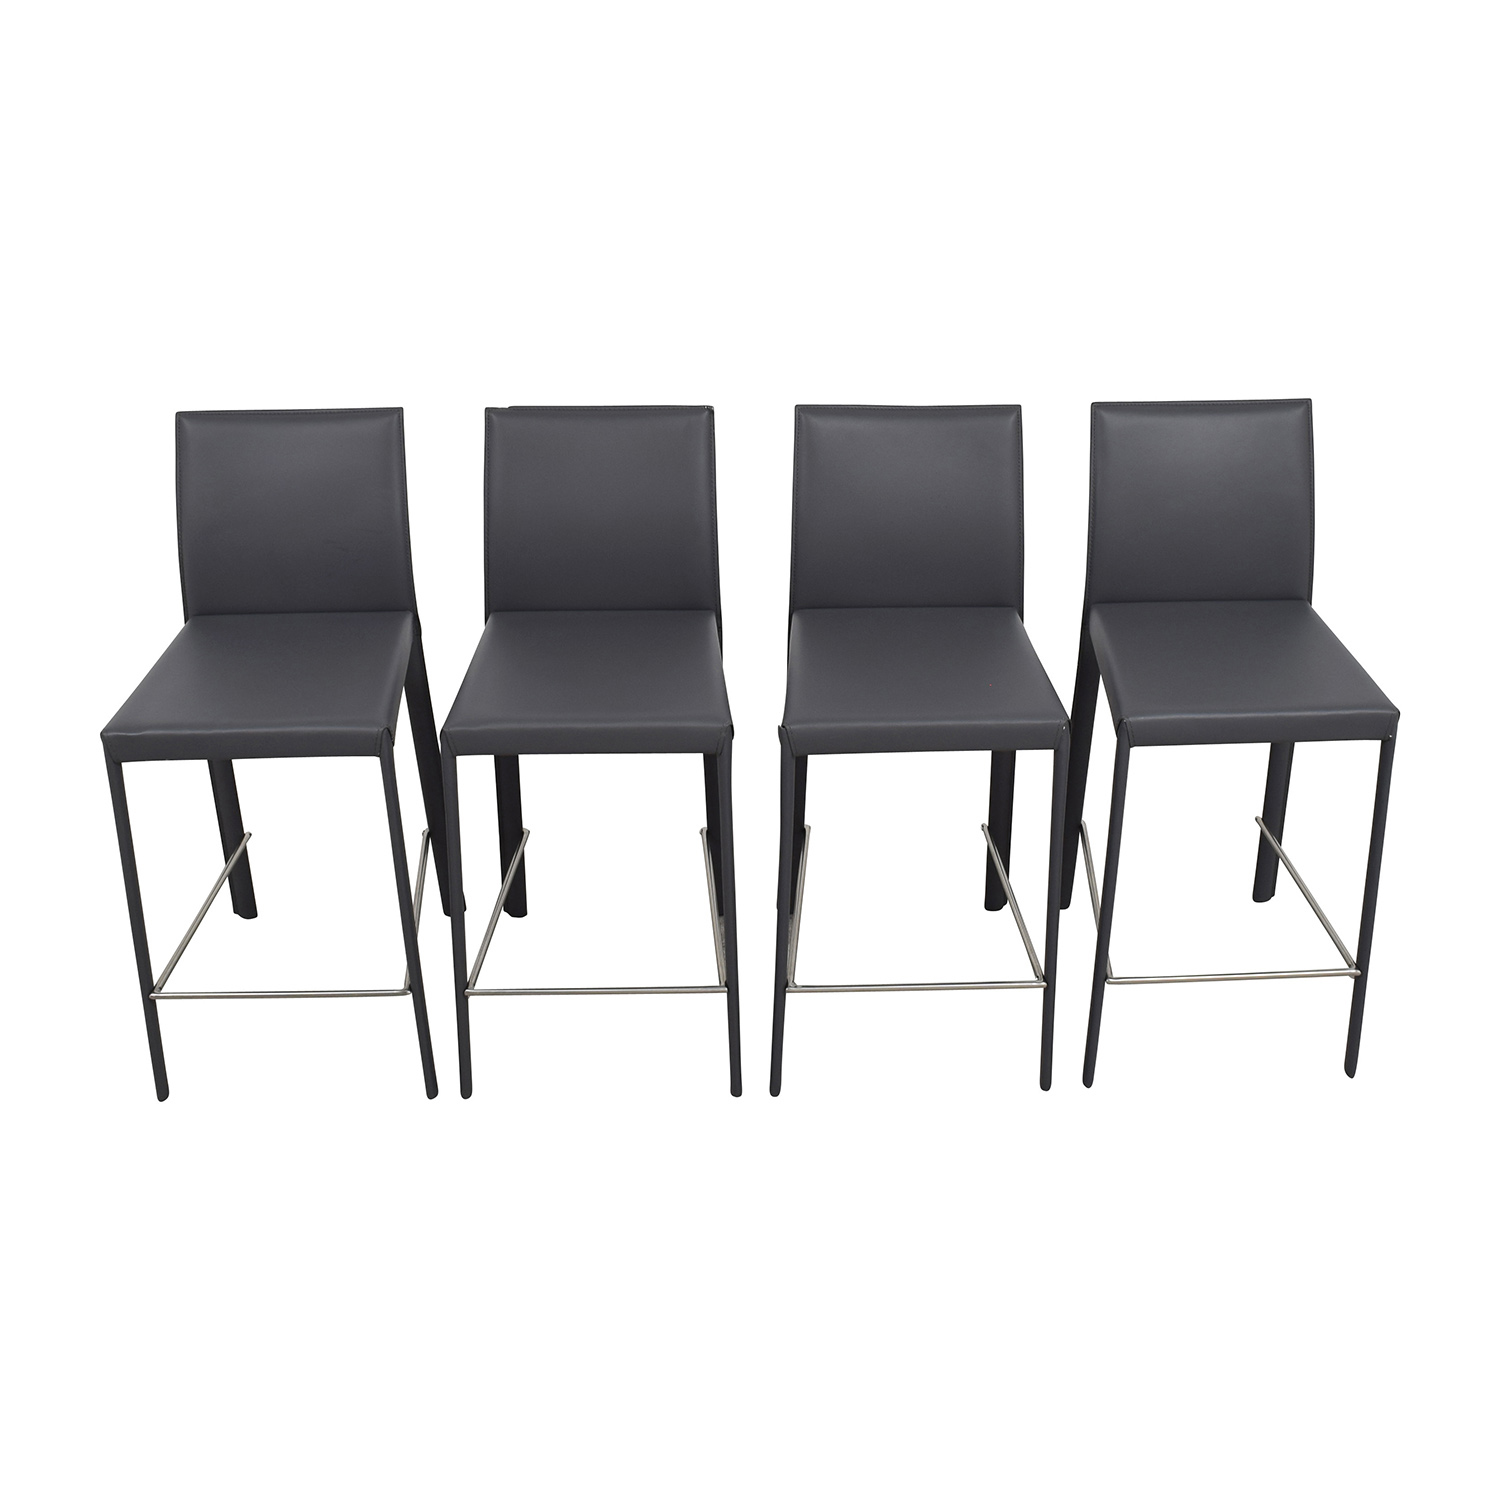 shop InMod Hasina-C Black Leather Counter Stools InMod